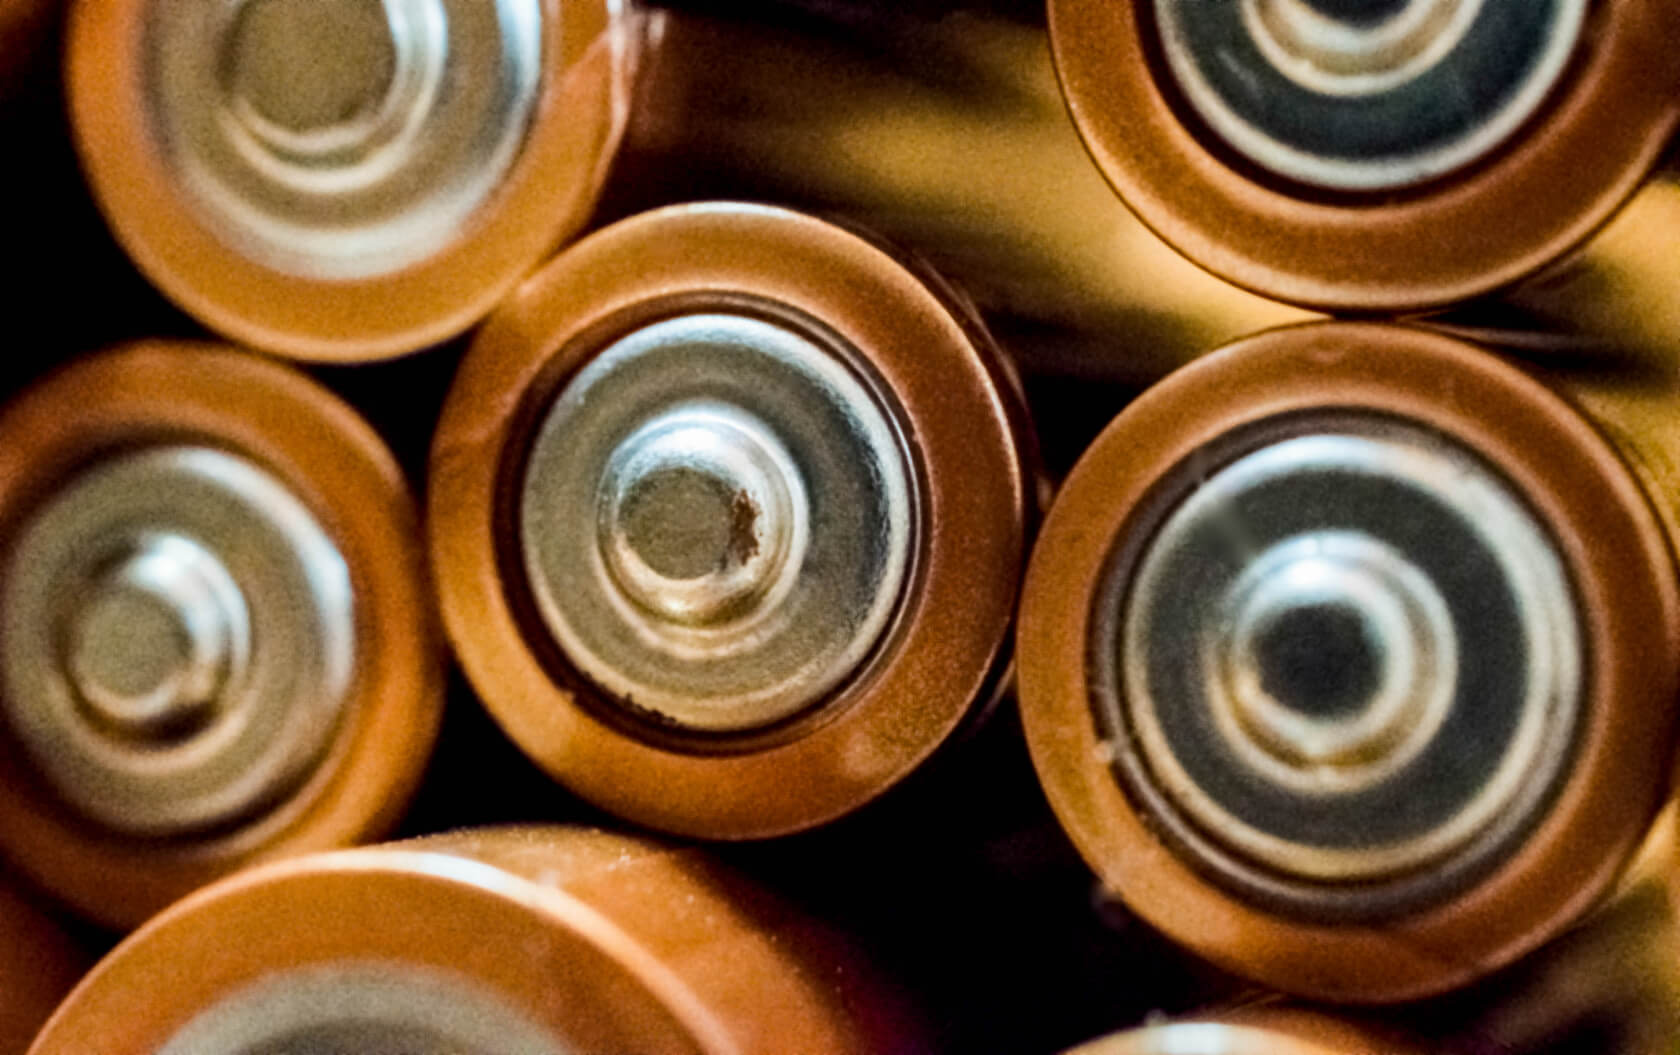 Scientists are developing magnesium batteries, safer and more efficient than traditional Lithium